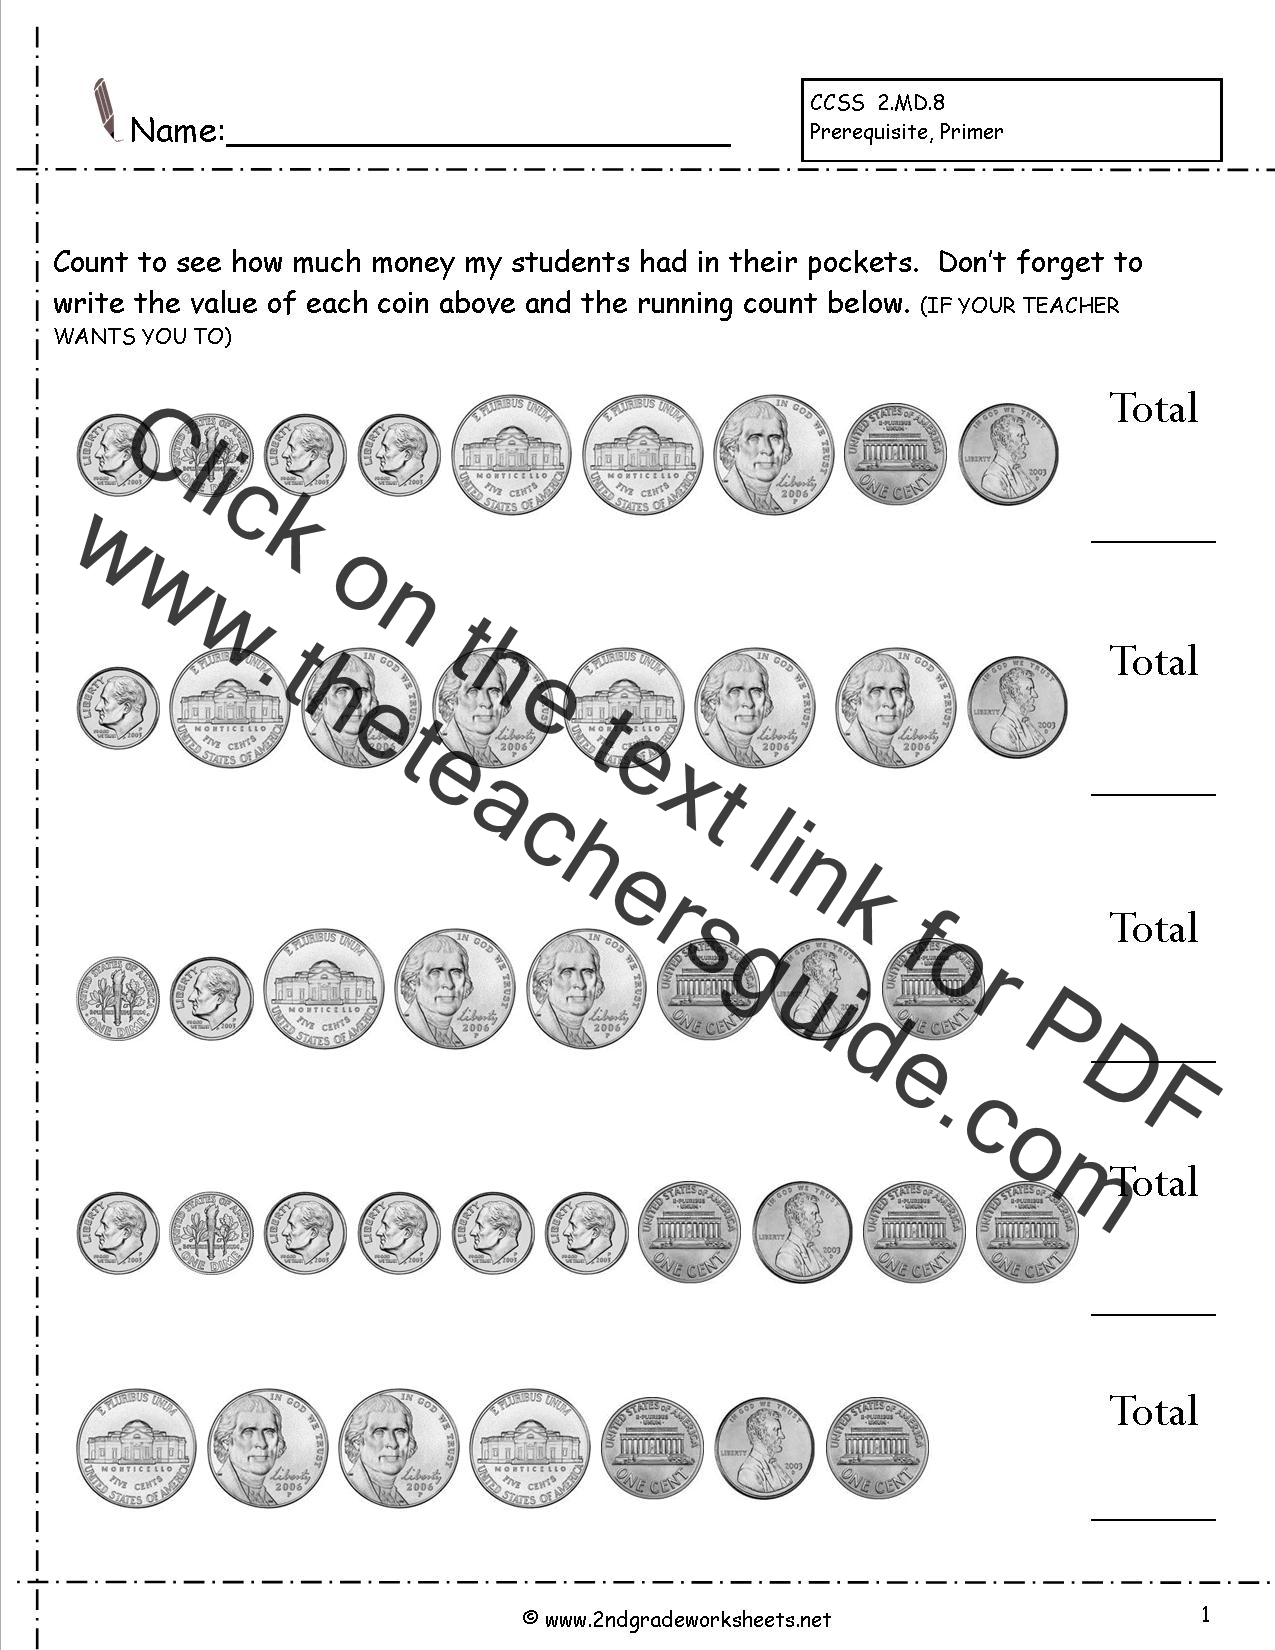 Worksheets Value Of Coins Worksheet counting coins and money worksheets printouts without quarters